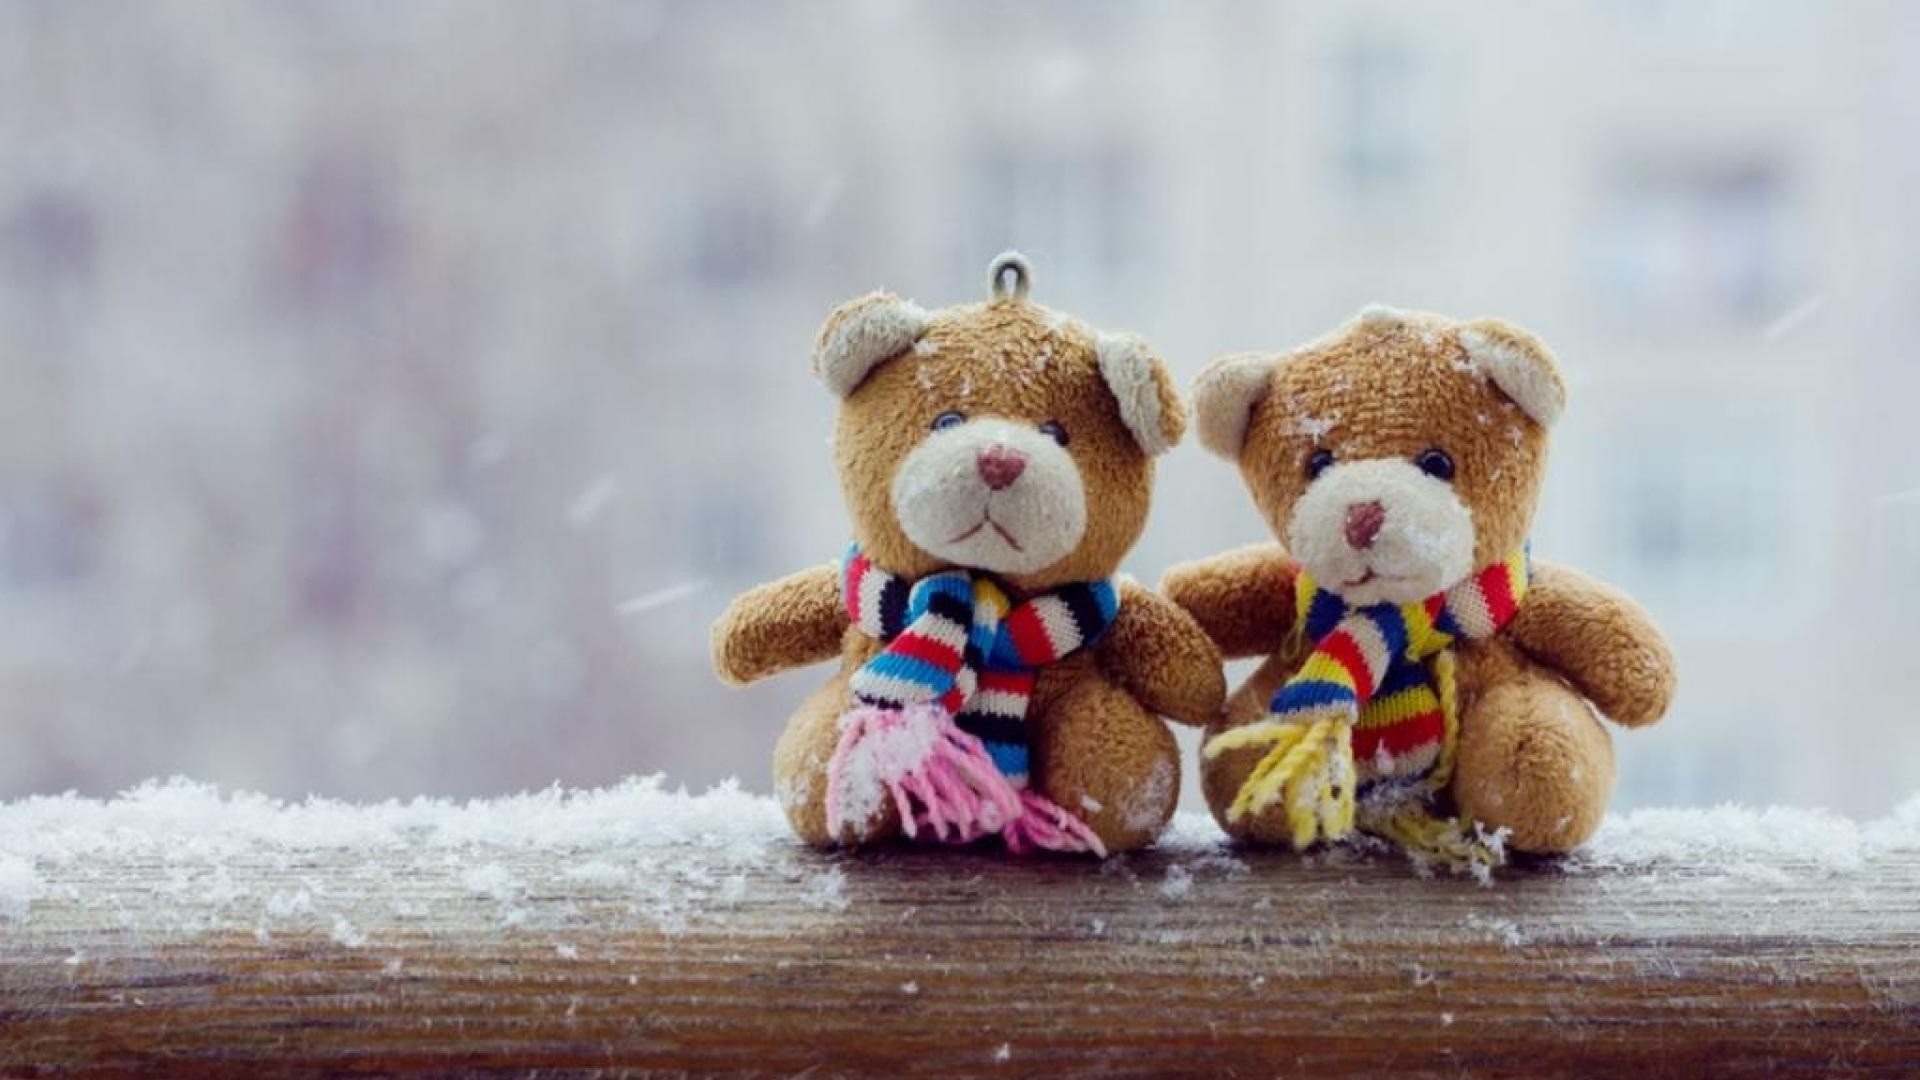 happy teddy bear day hd images love